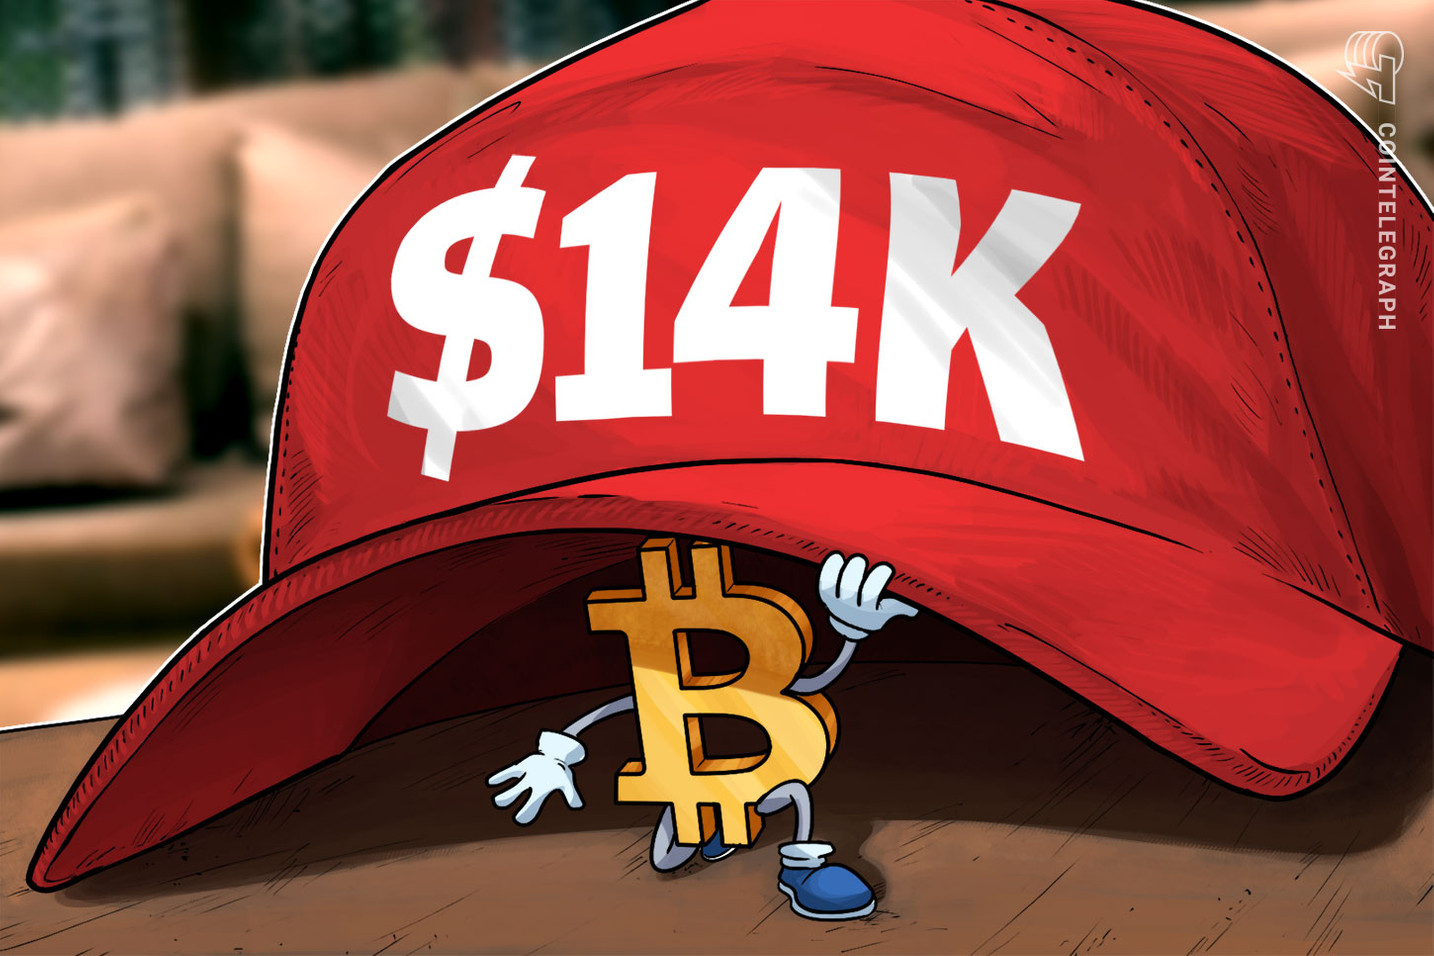 Bitcoin price: Why $14K looks eerily similar to $700 during the 2016 election